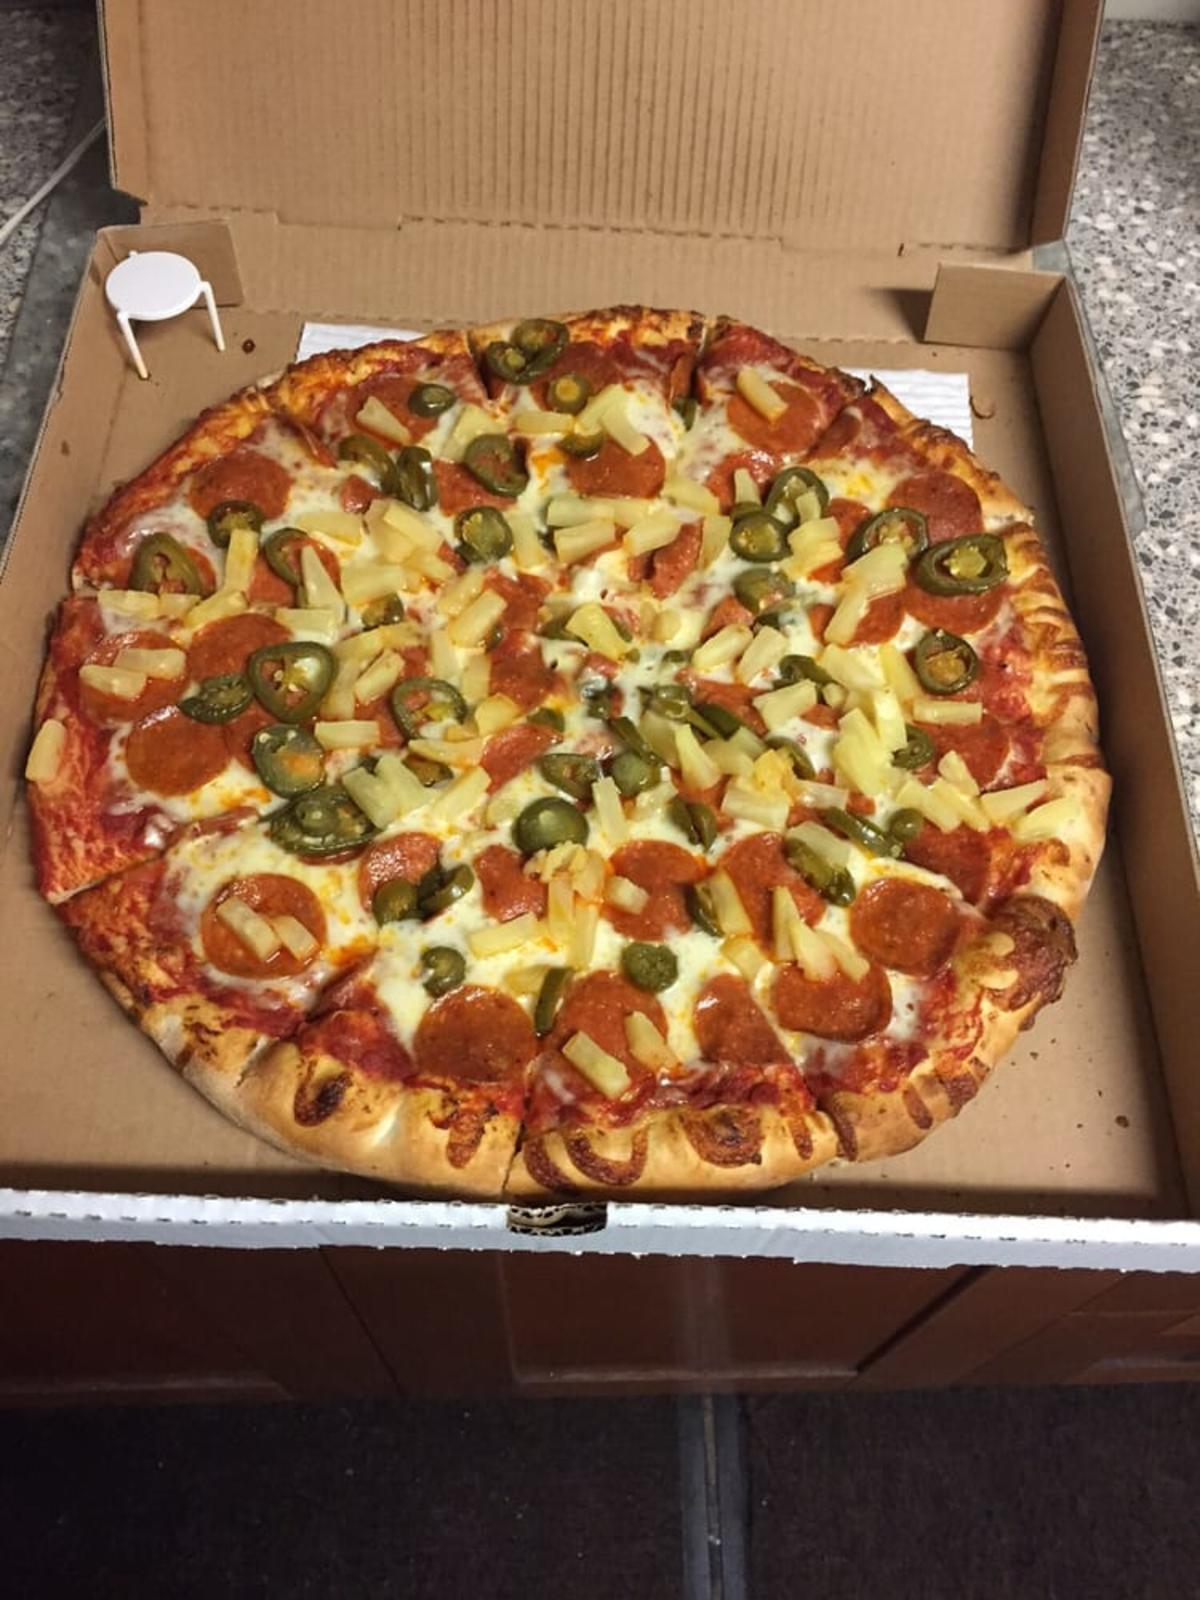 Munchies Pizza in Huntington Beach